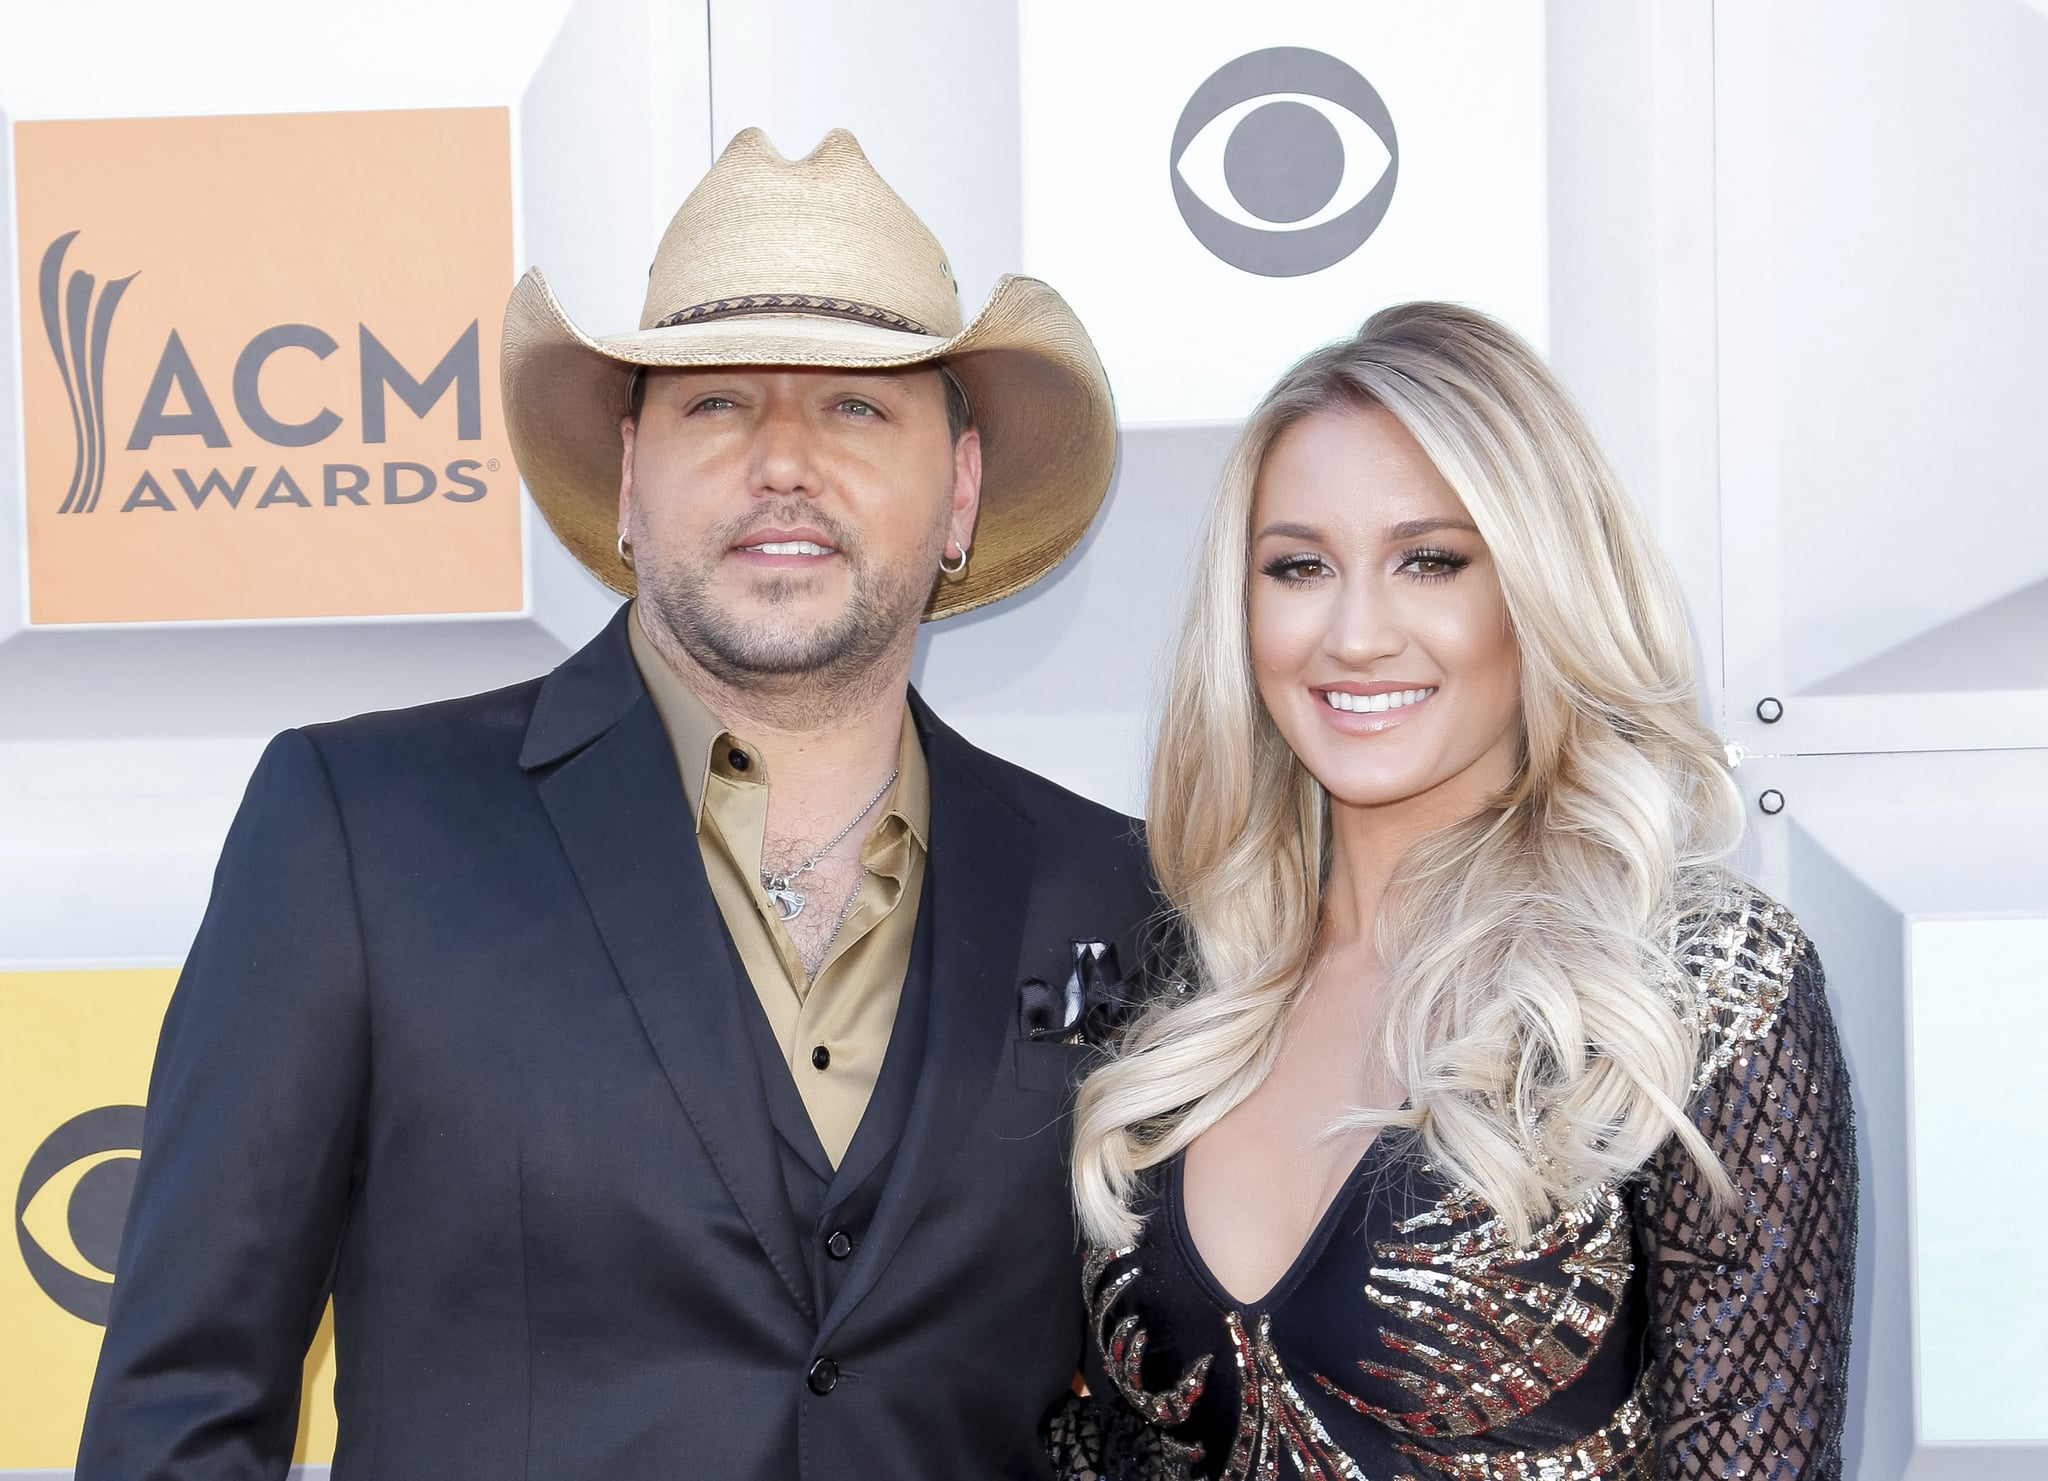 LAS VEGAS, NEVADA - APRIL 03:  (L-R) Jason Aldean and Brittany Kerr attend the 51st Academy of Country Music Awards at MGM Grand Garden Arena on April 3, 2016 in Las Vegas, Nevada.  (Photo by Tibrina Hobson/Getty Images for TheWrap)